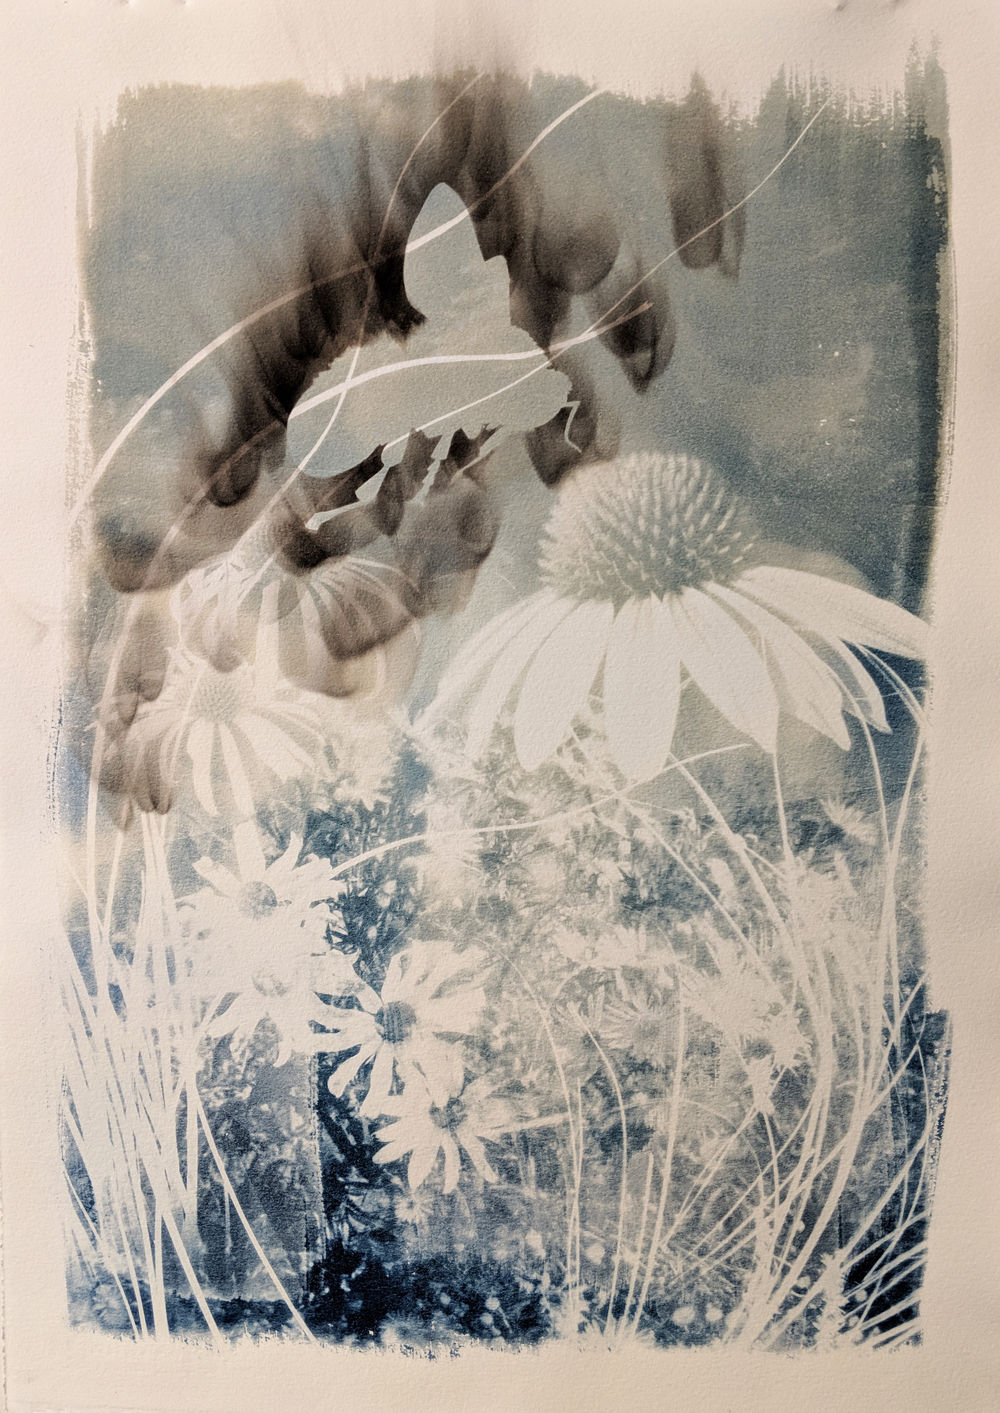 "- Rusty Patched Bumble Bee2019Cyanotype and candle soot, 15x22""$190"